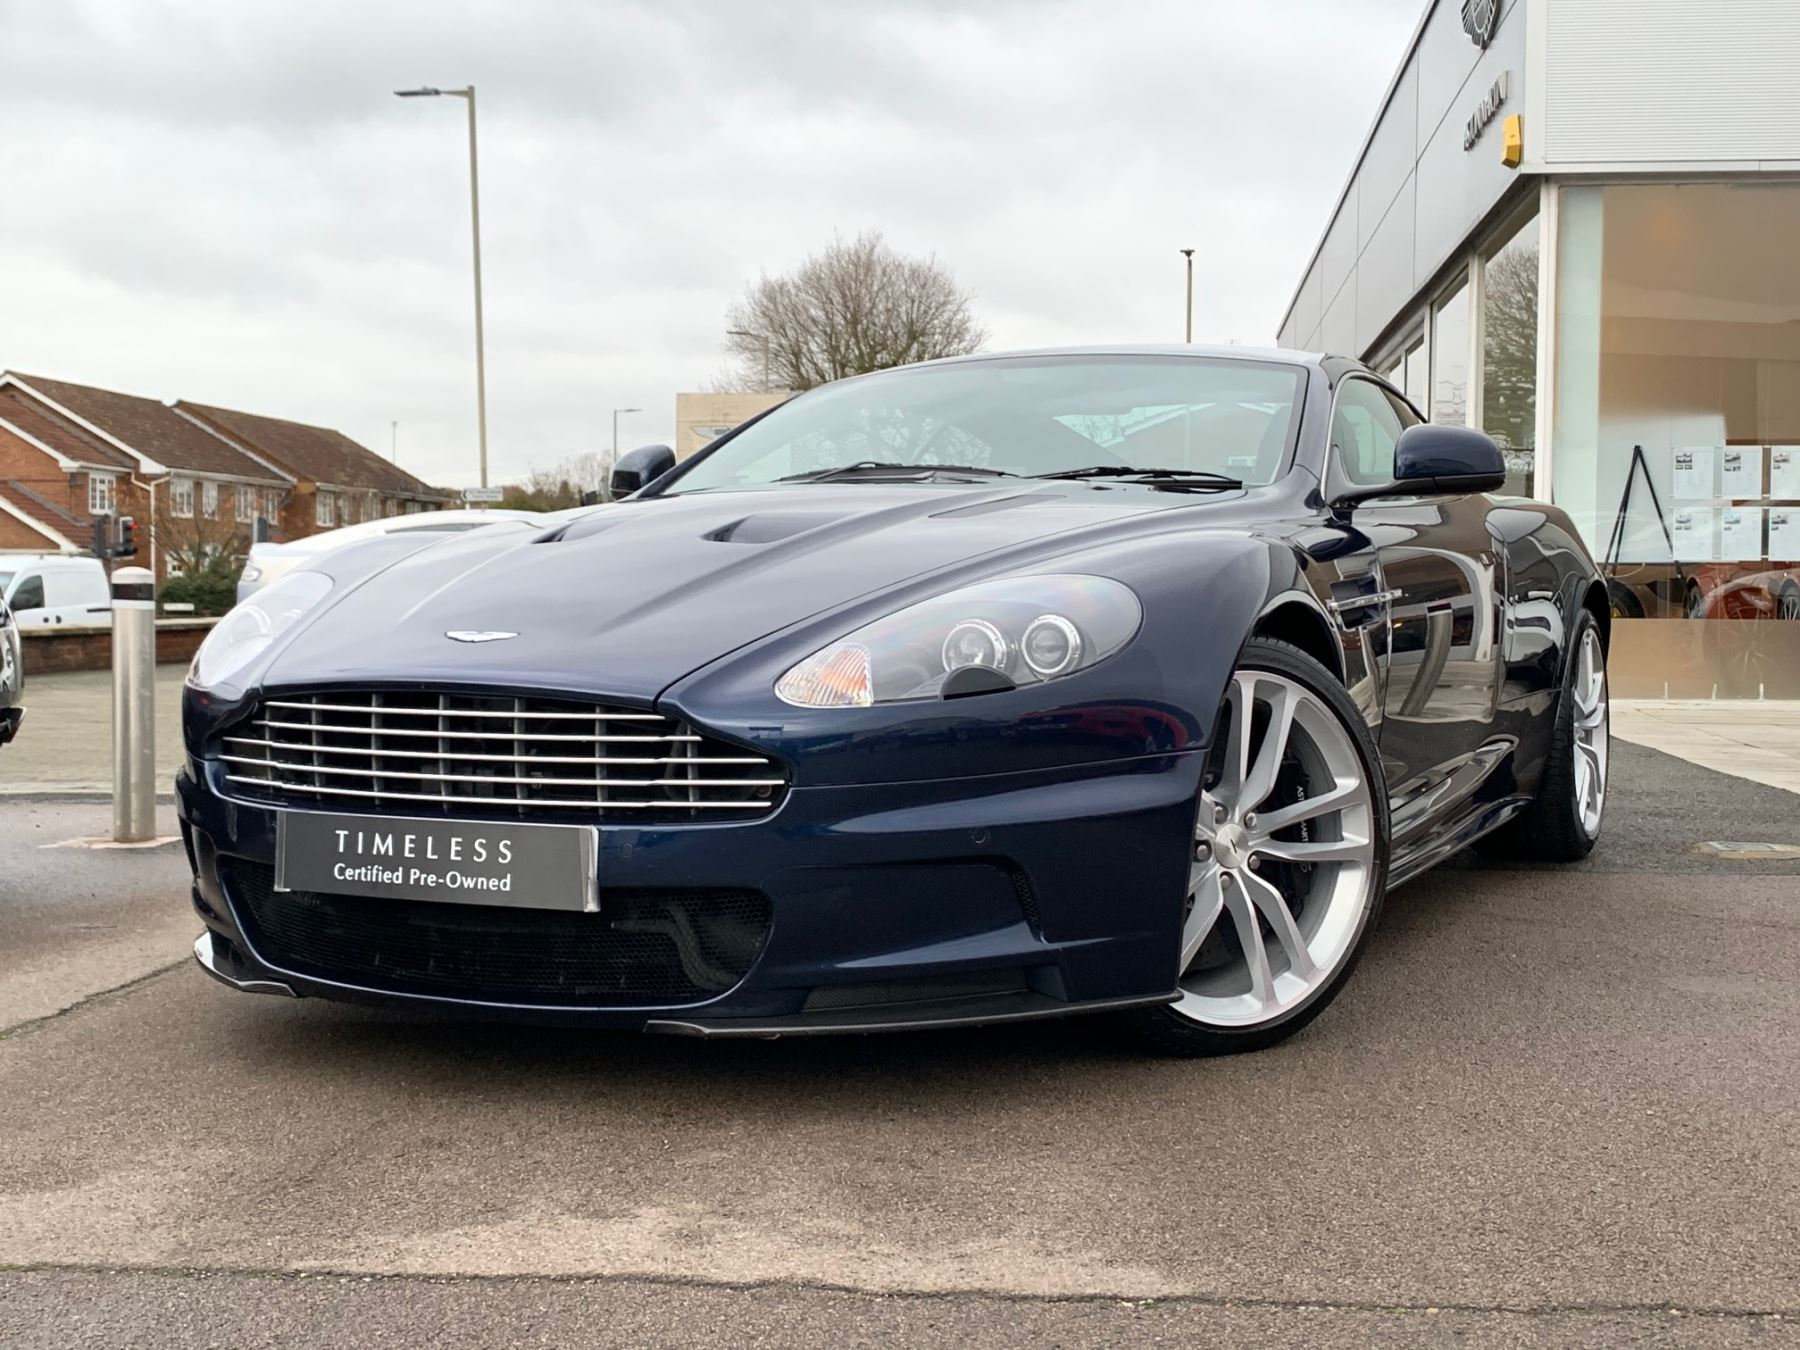 Aston Martin DBS V12 2dr Touchtronic 5.9 Automatic Coupe (2010)